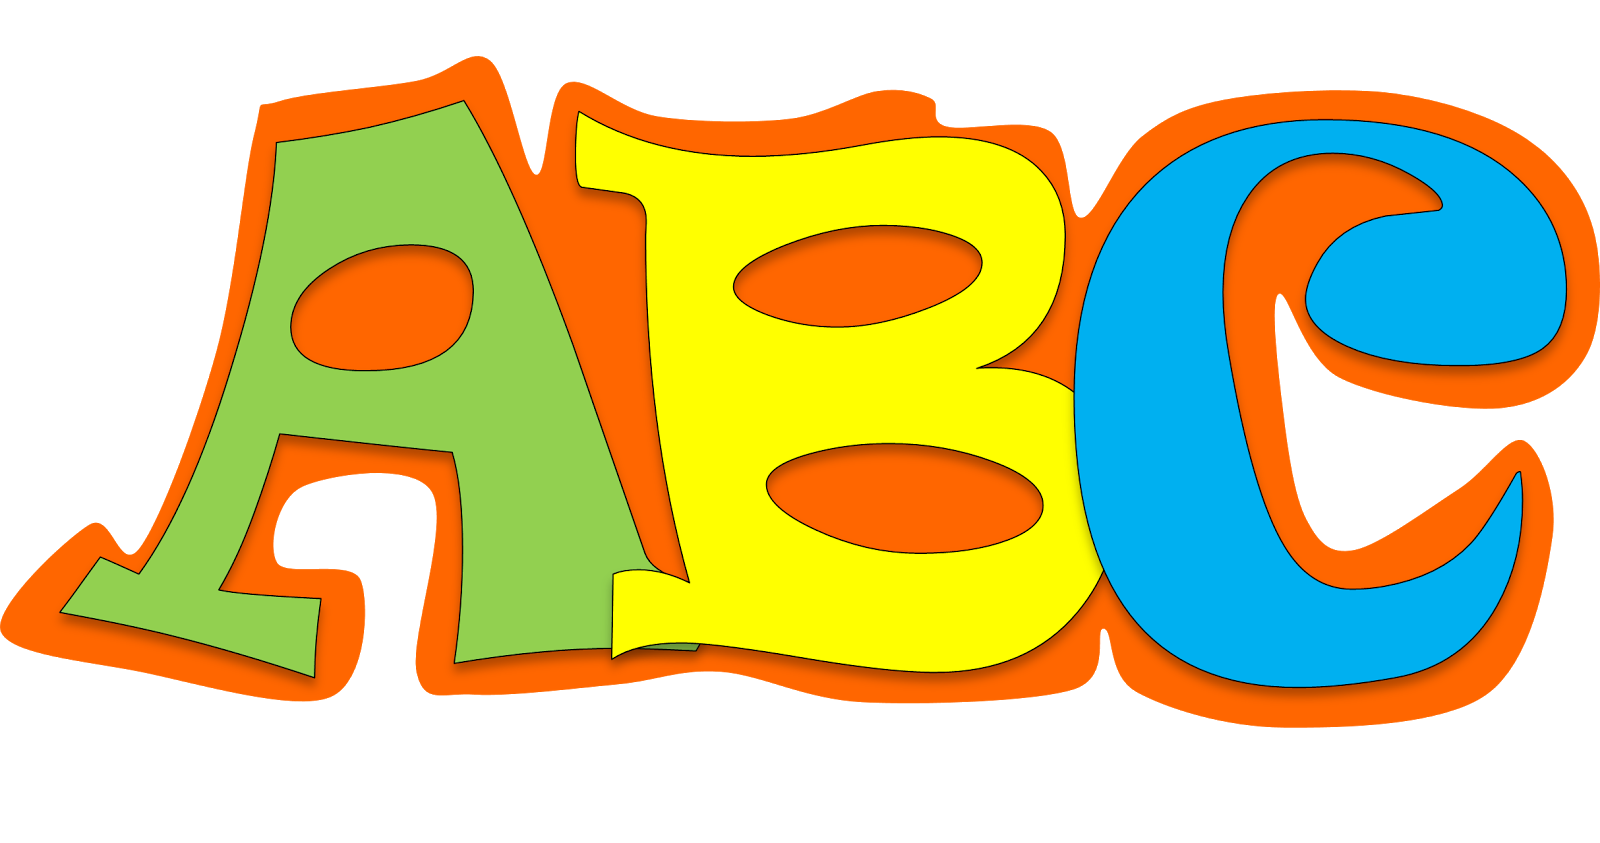 Free Alphabet Clipart | Free download best Free Alphabet Clipart on ...